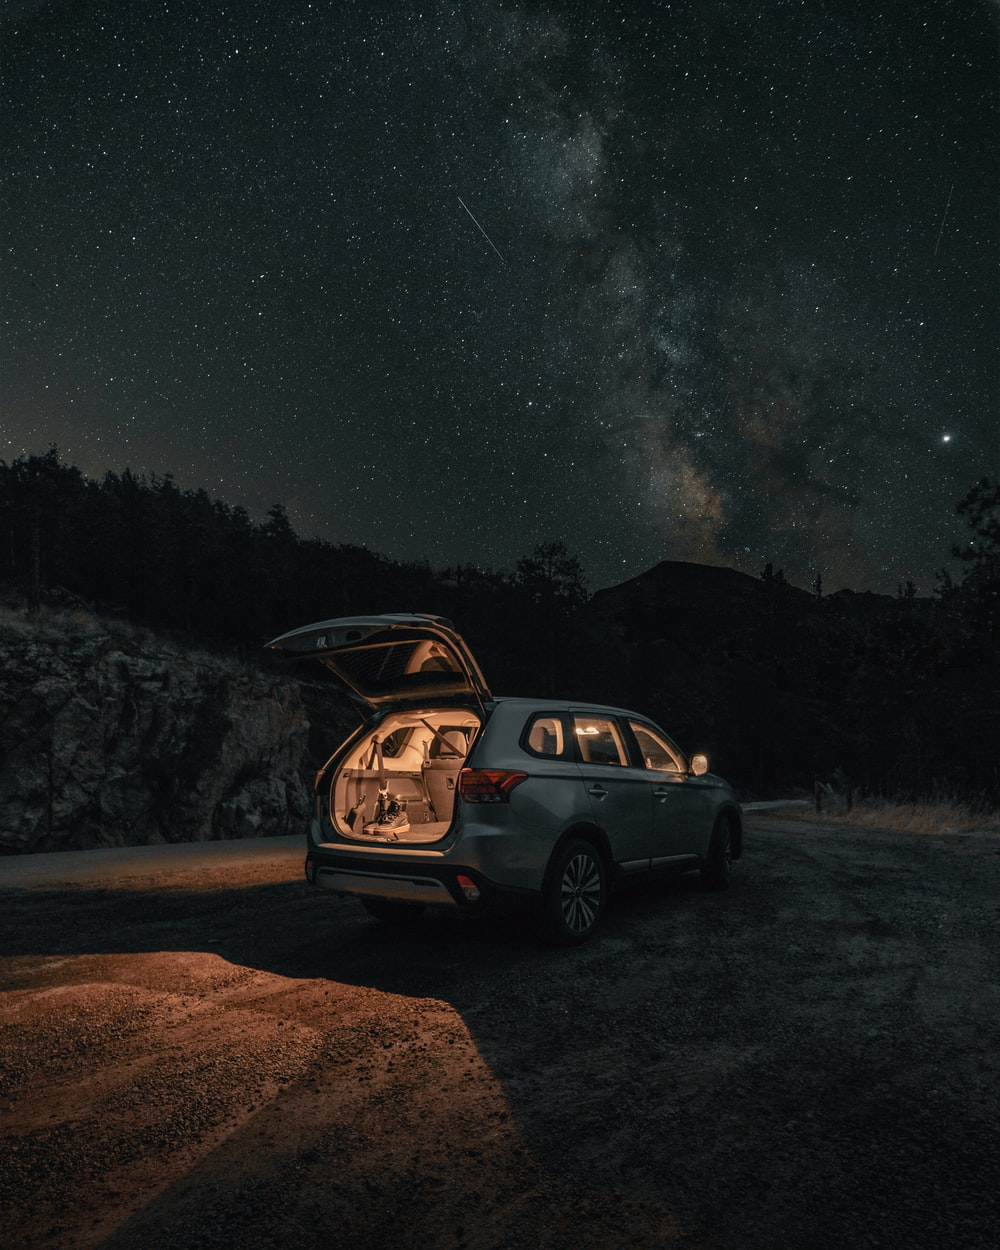 black suv on dirt road during night time